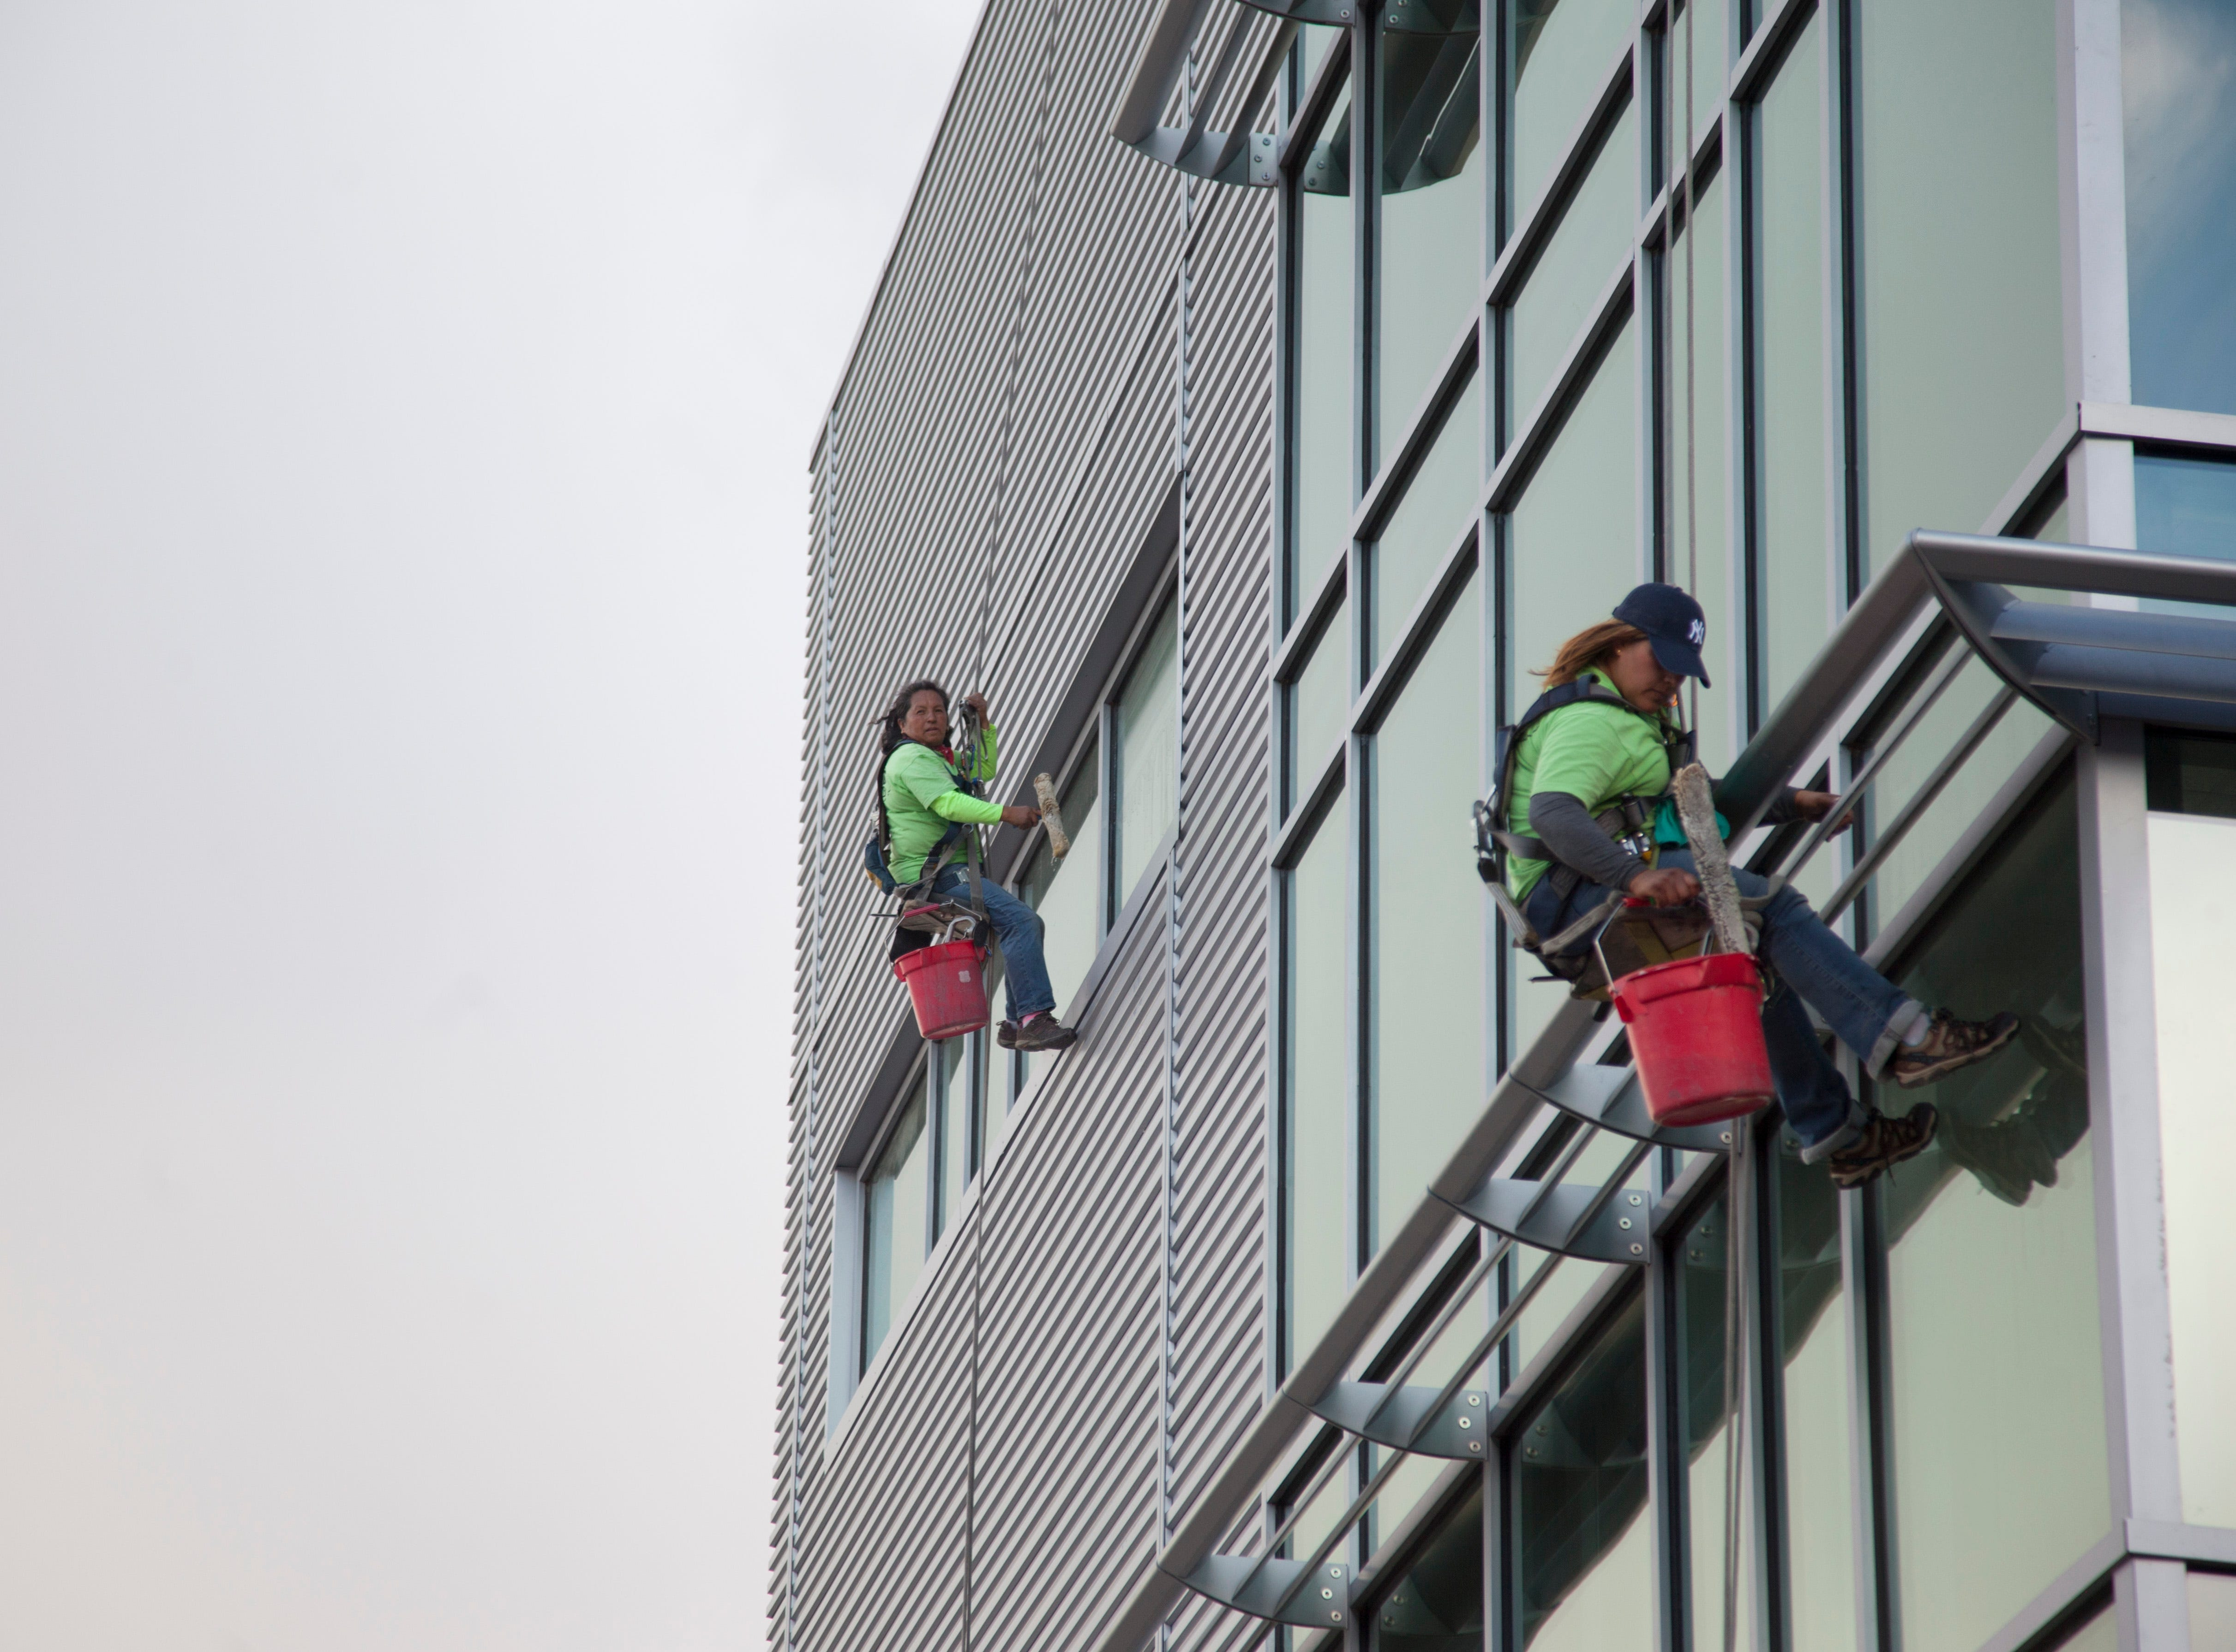 Work including window washing continues at the Intermountain Cancer Center on Sept. 5, 2018.